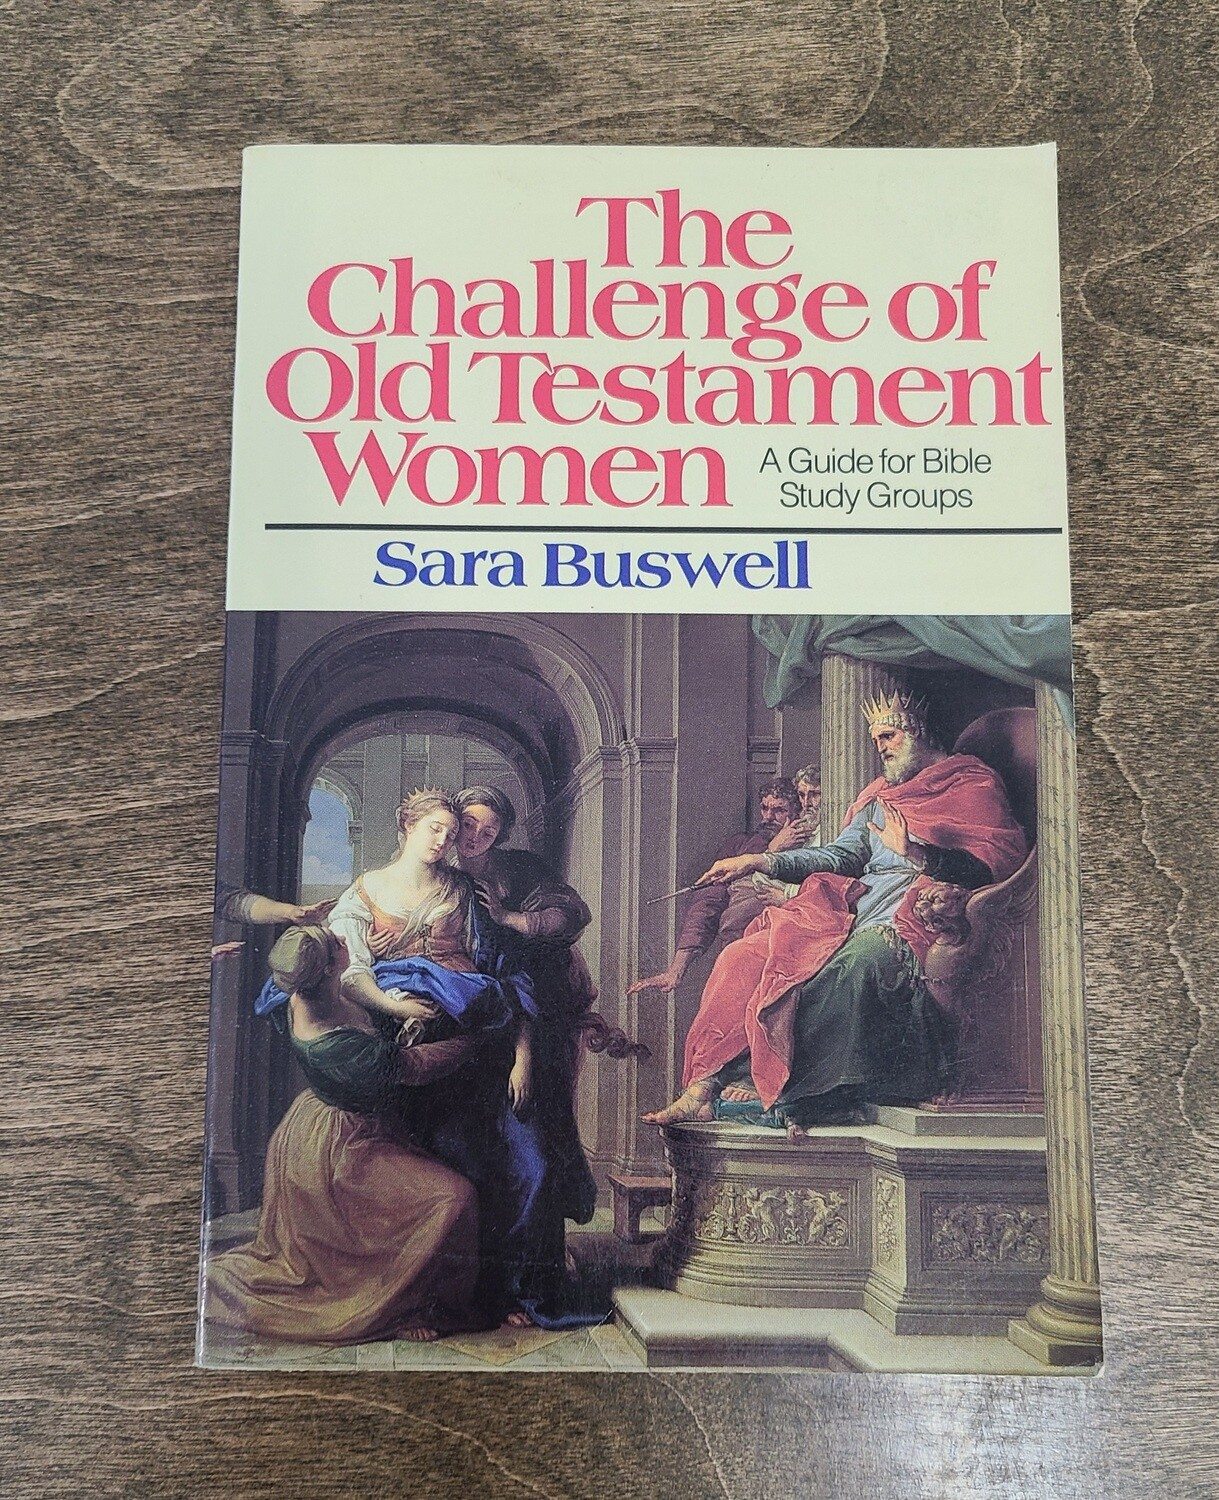 The Challenge of Old Testament Women by Sara Buswell